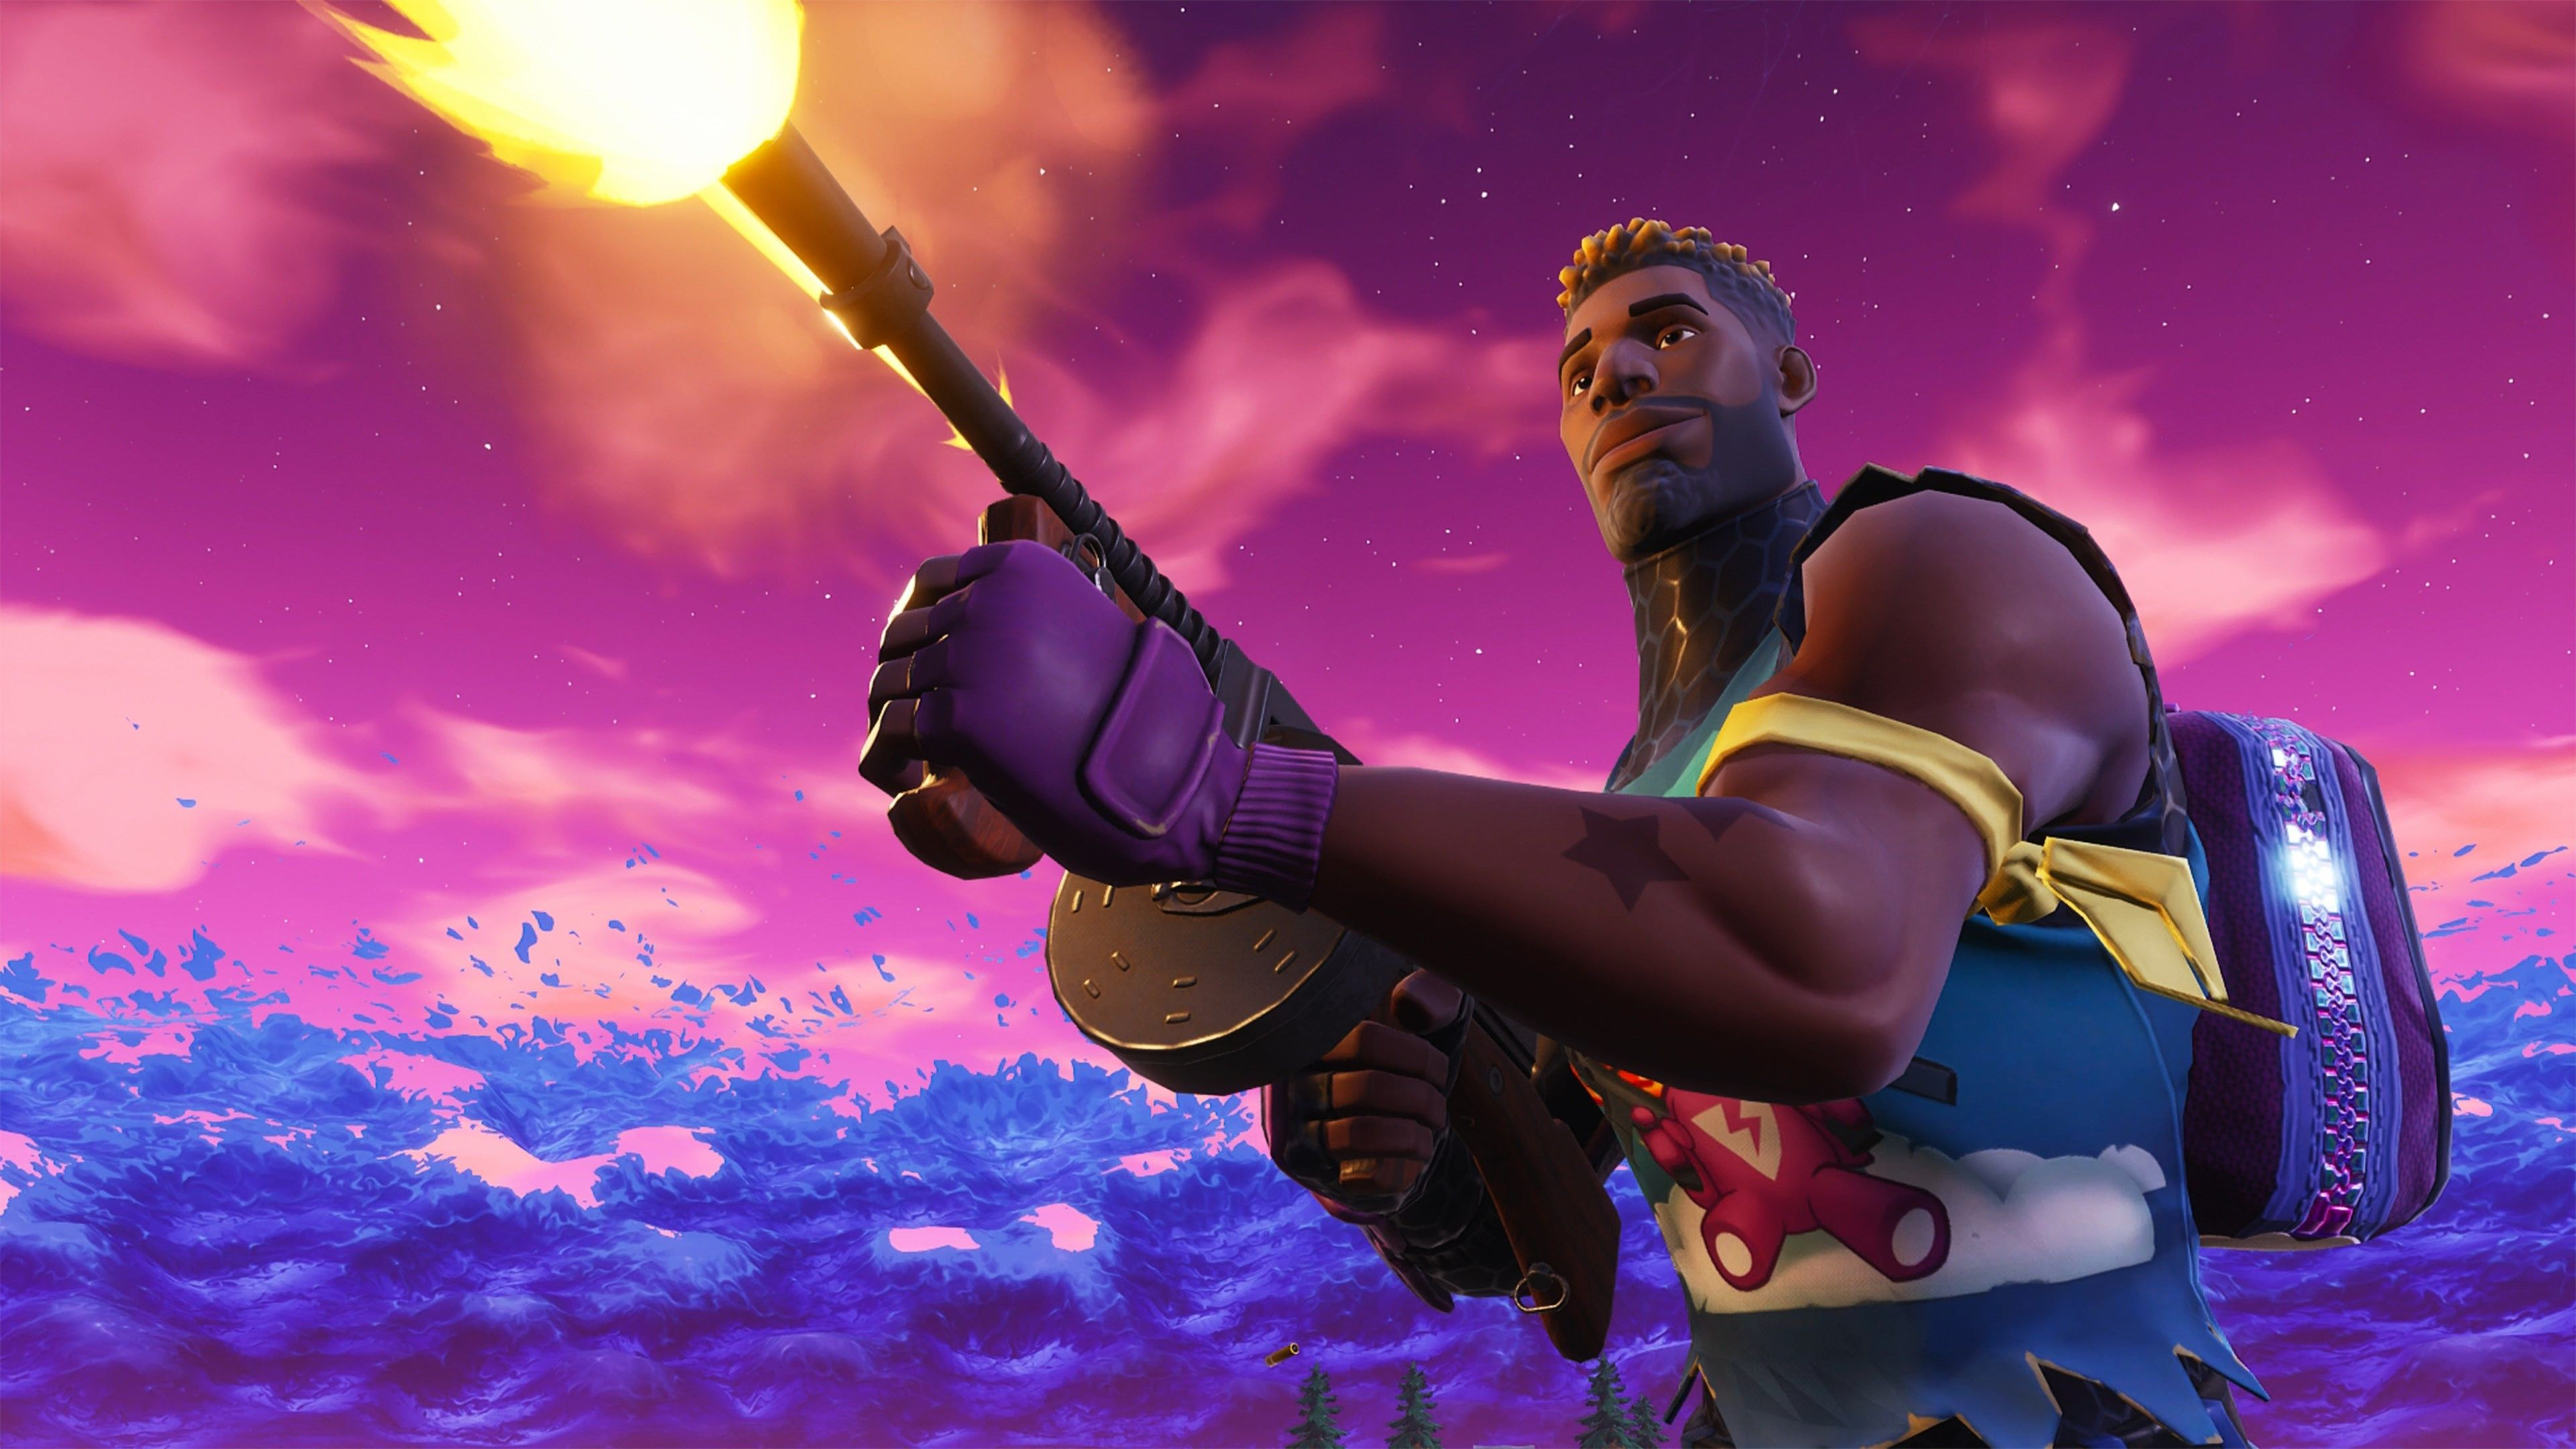 Fortnite Cool Wallpapers Hd Desktop Iphone Wallpaper Hipster Abstract Art Wallpaper Background Images Wallpapers